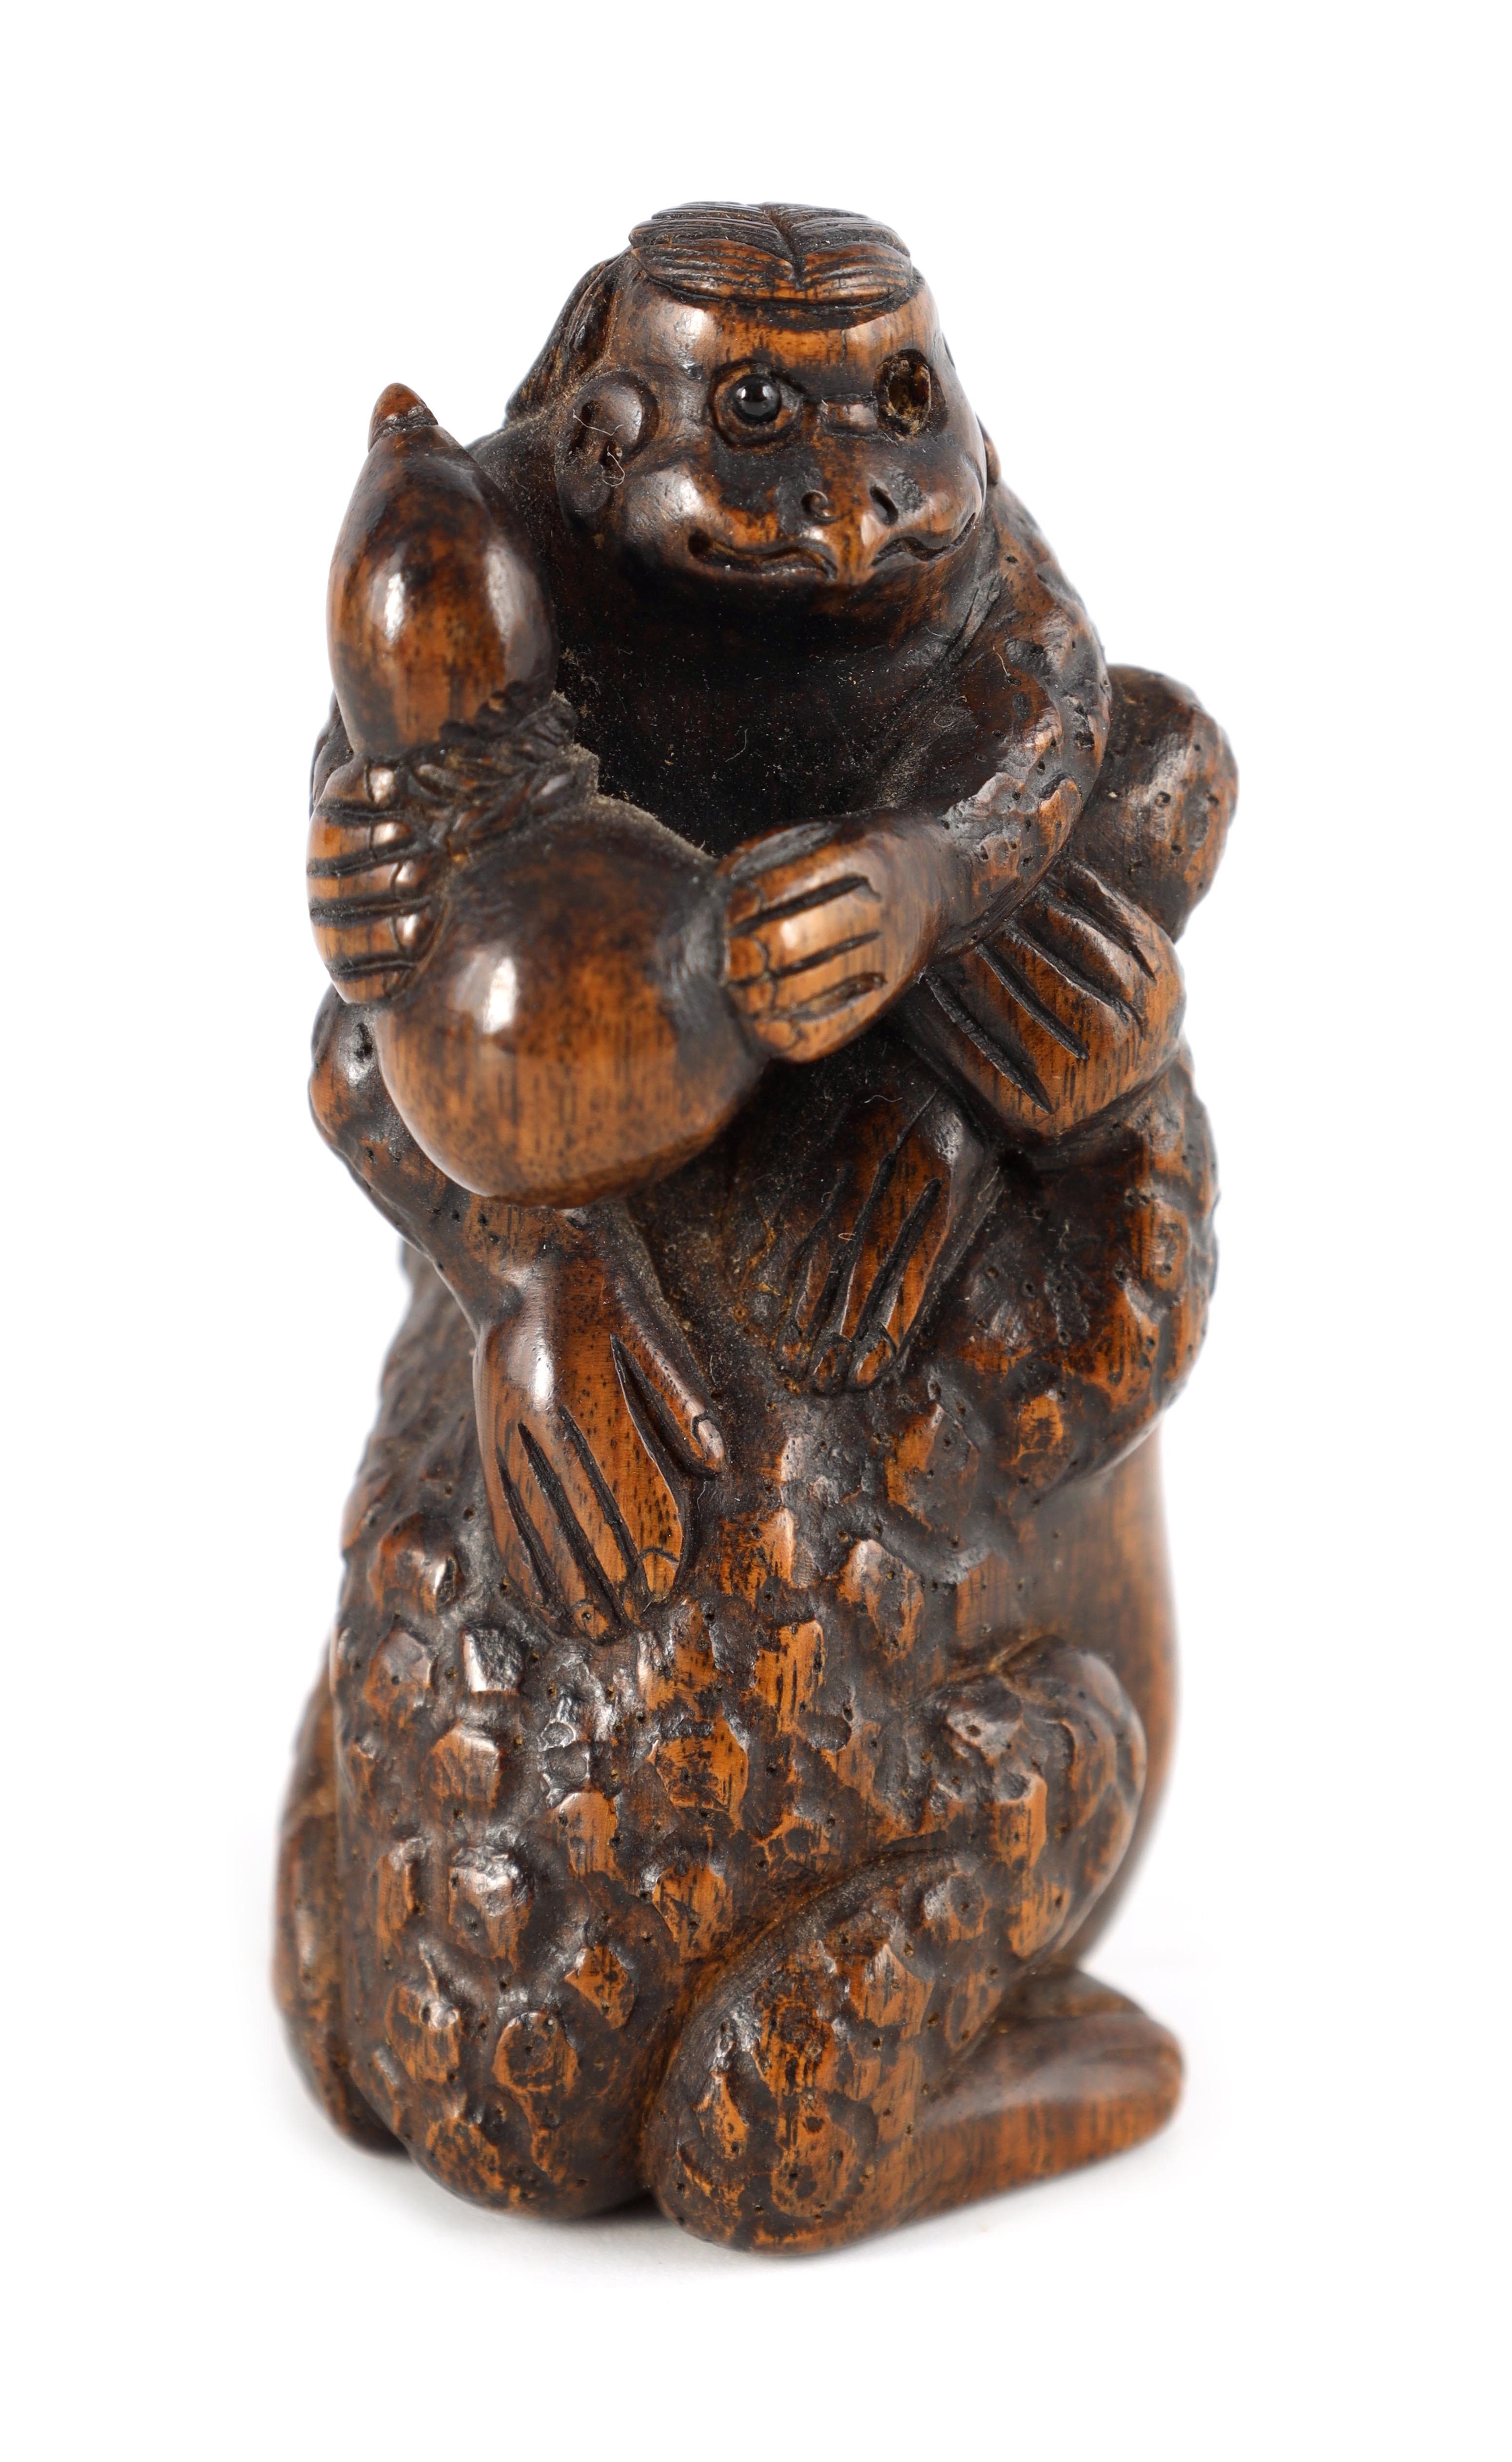 A FINELY CARVED MEIJI PERIOD NETSUKI depicting a monkey holding fruit sat on a toad - h inlaid ivory